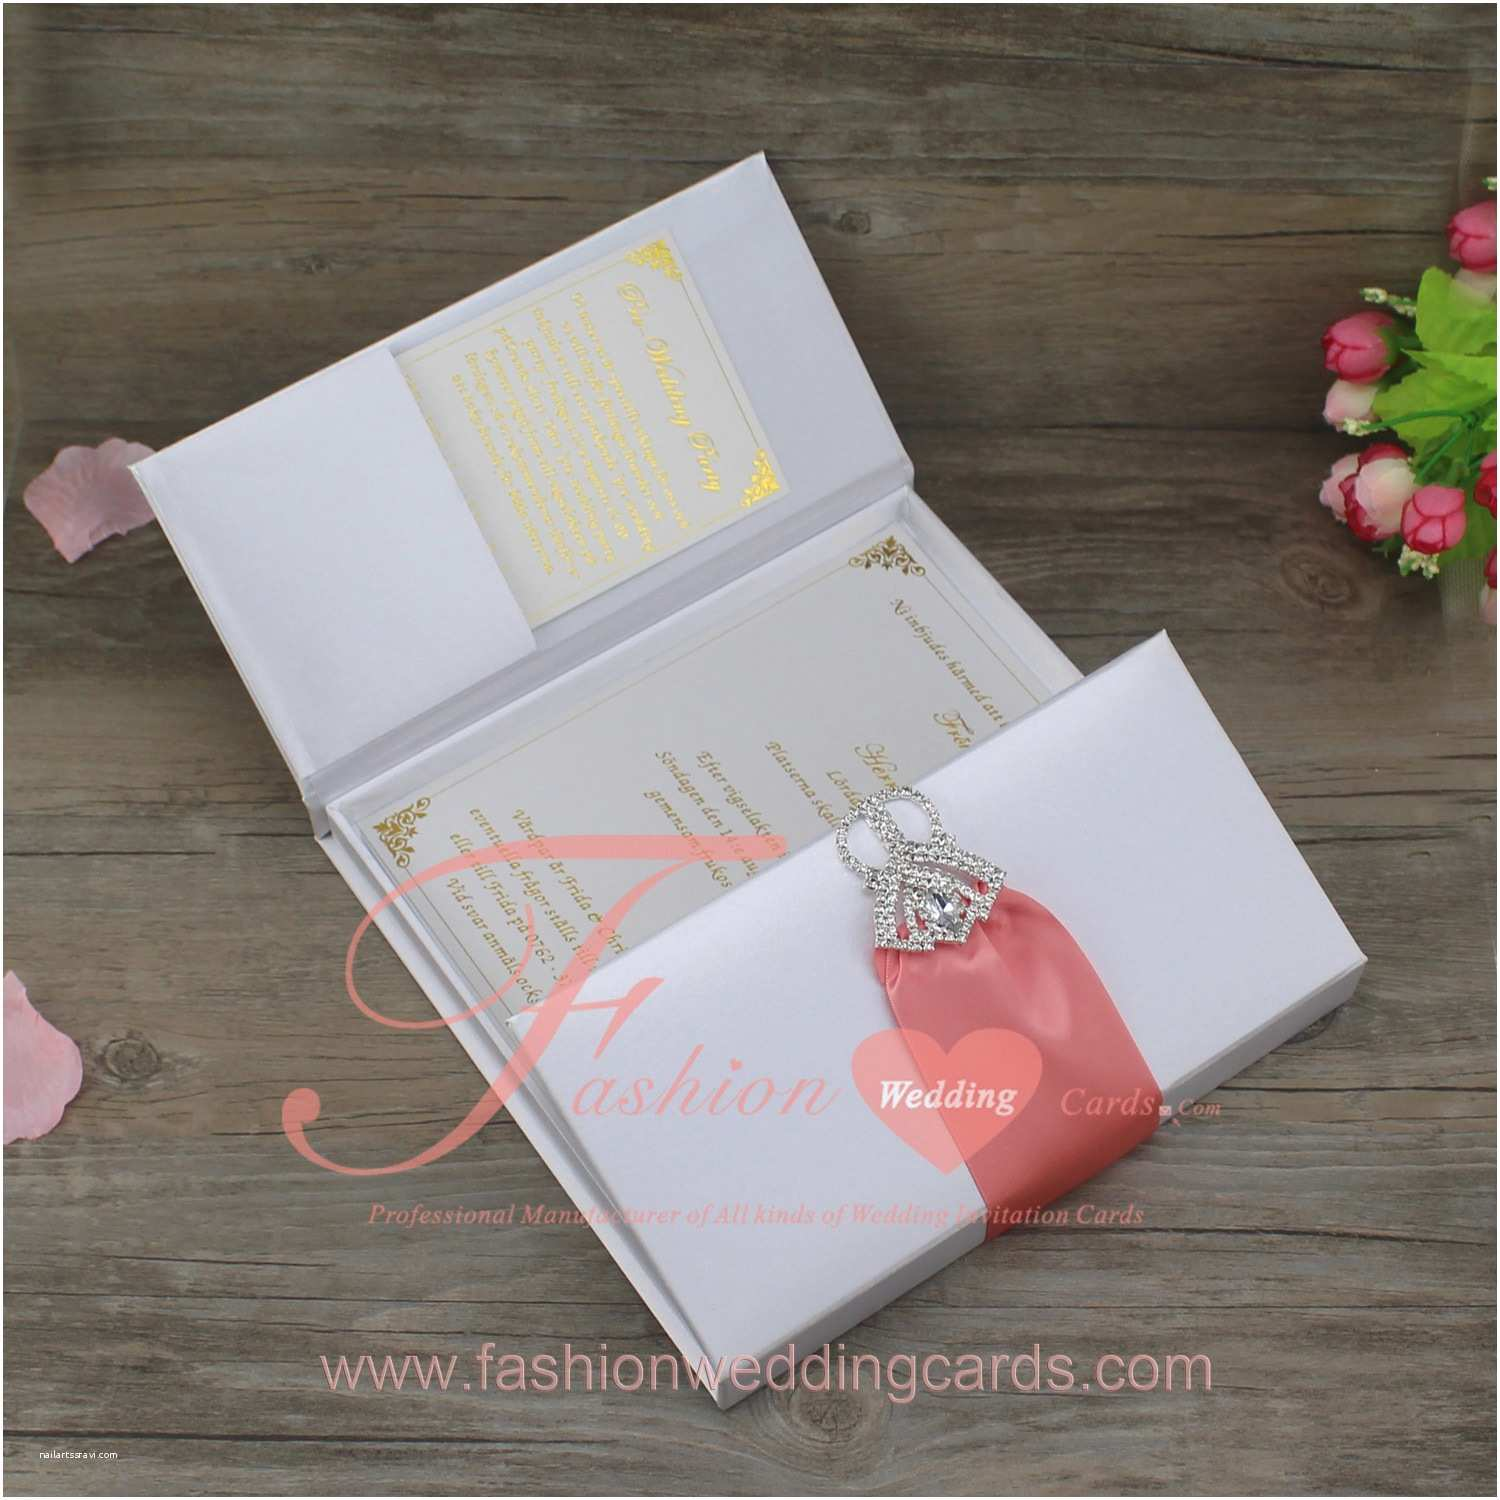 Wedding Invitation Boxes Cheap Silk Boxes for Invitations wholesale